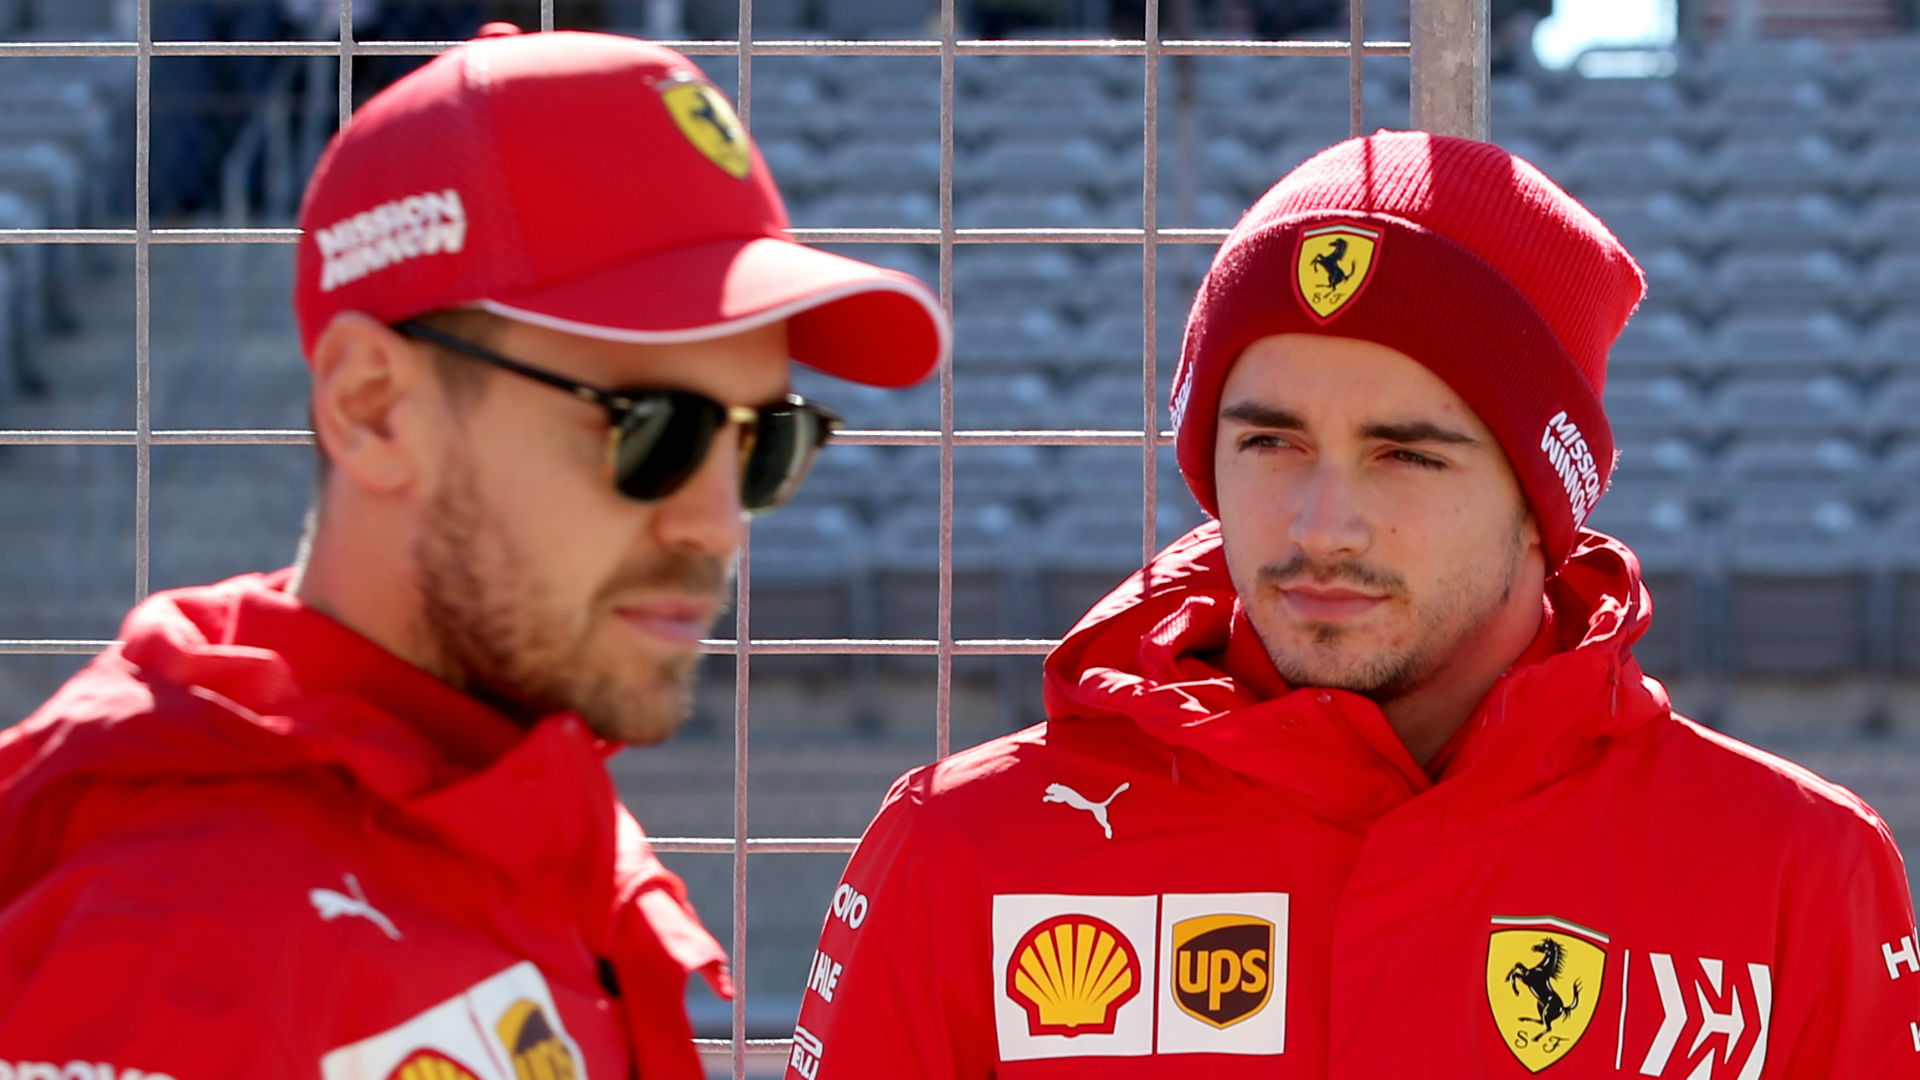 Leclerc: Vettel should not have made costly Interlagos move